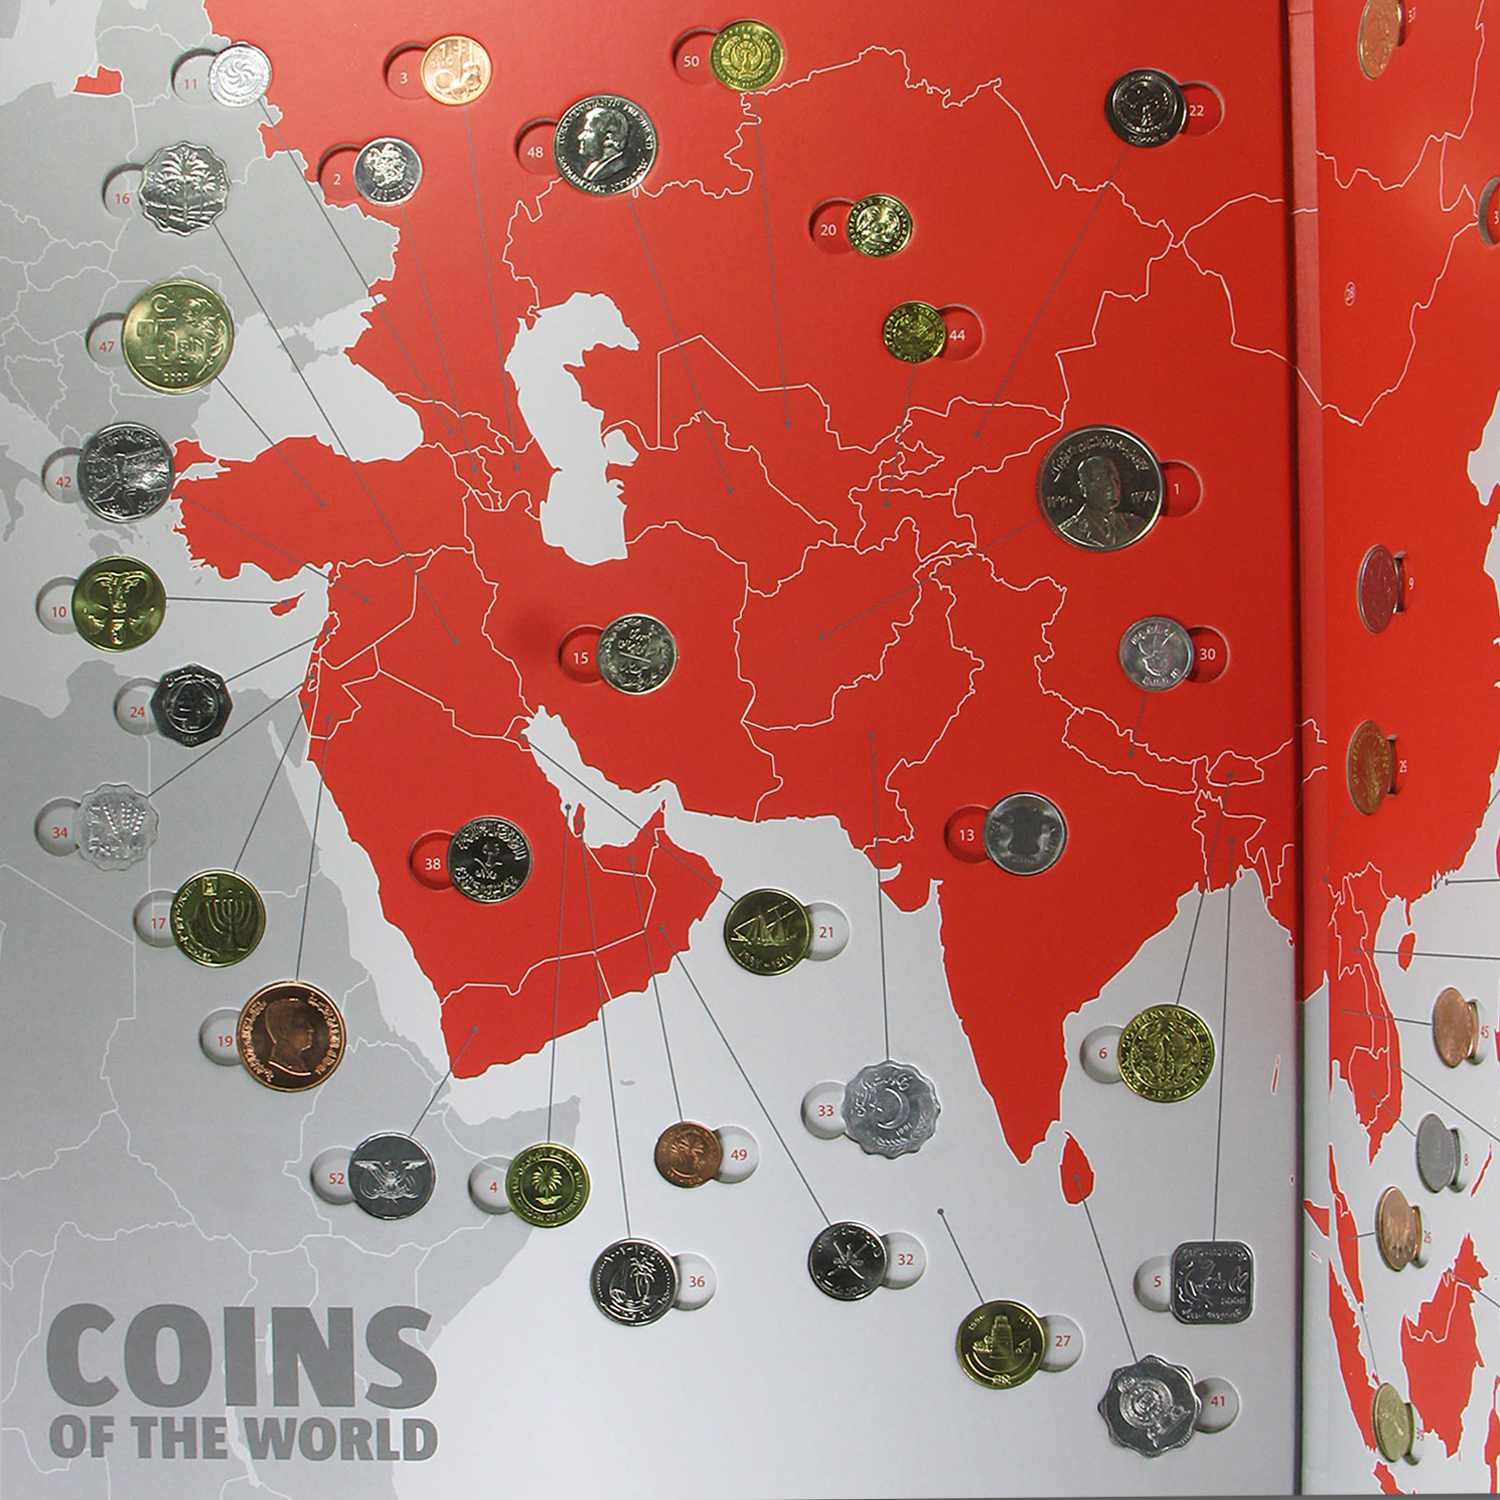 Coins of the World - Asia (47 coins)